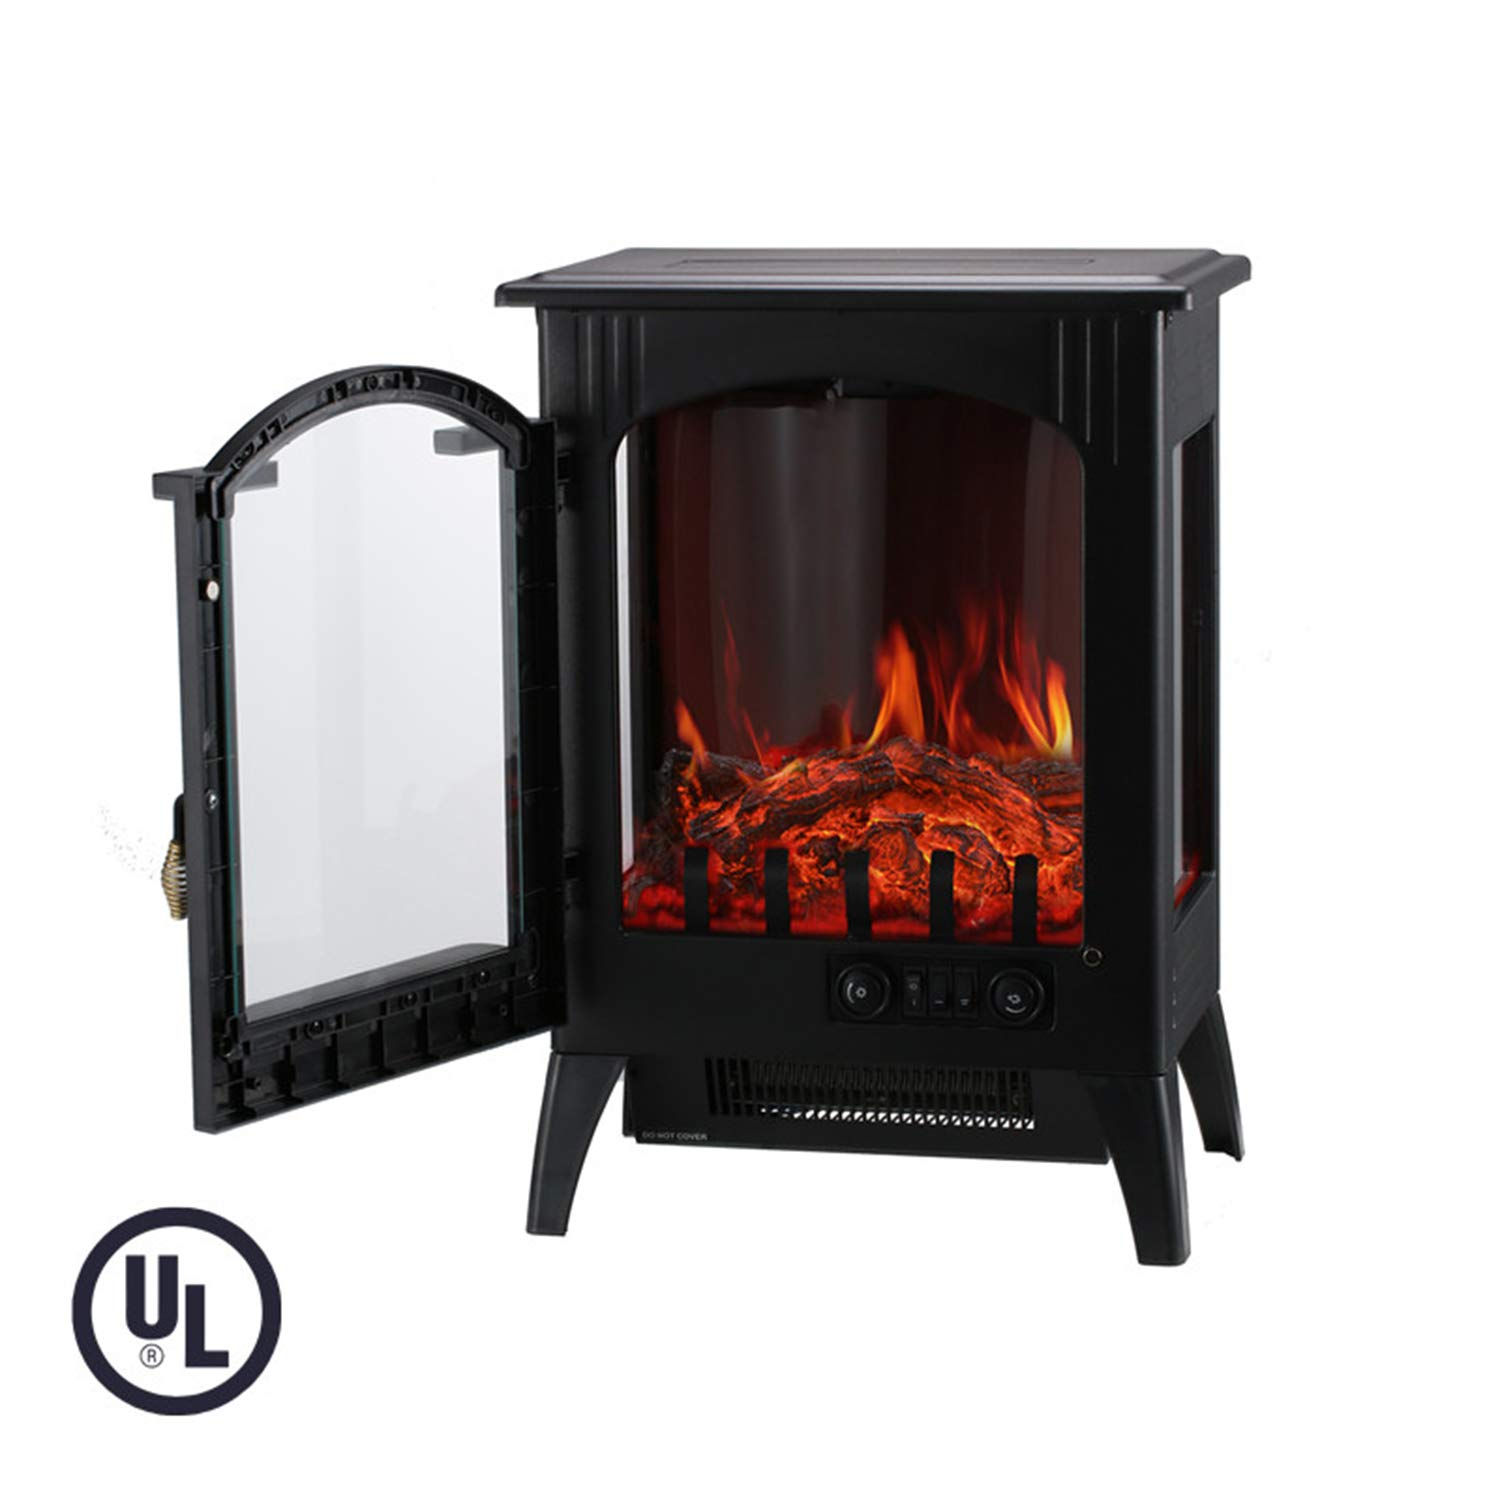 KOOLWOOM Portable Electric Fireplace Stove Heater with Thermostat for Office and Home 3D Flame &Quiet Fan 16.2 W x 10.6 D x 22.8 H, Black by KOOLWOOM